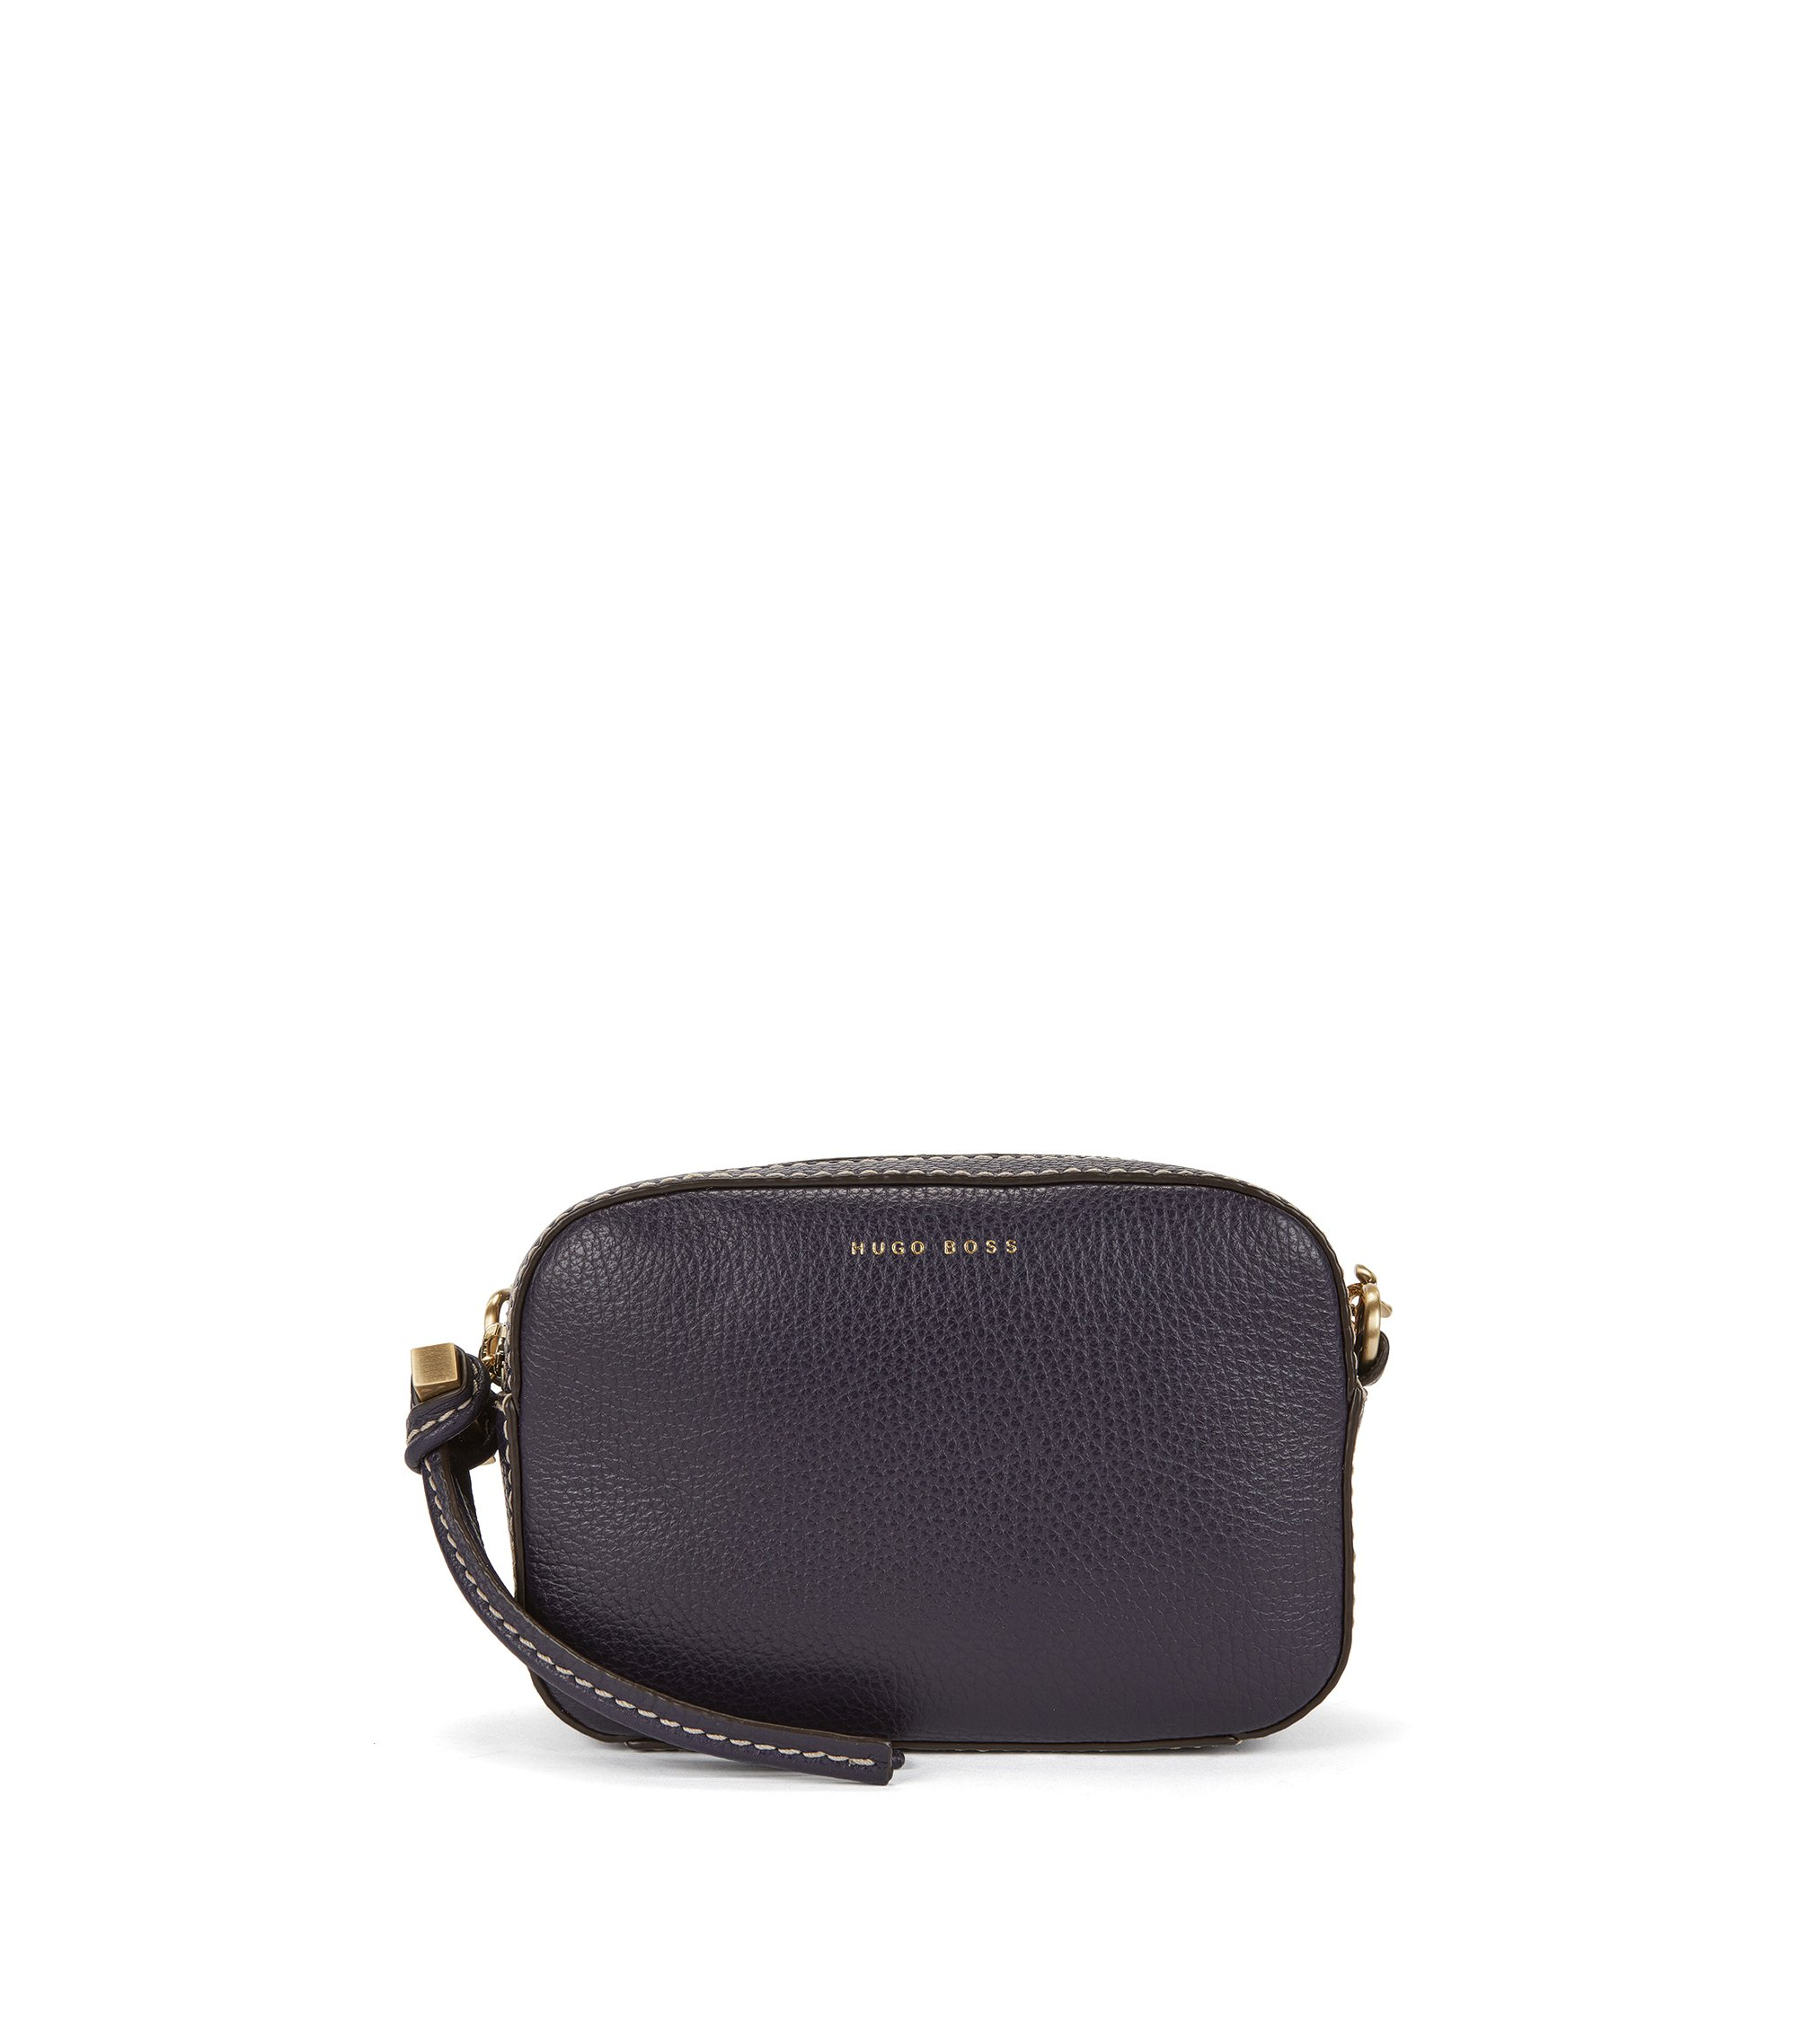 BOSS Bespoke Soft shoulder bag in grained Italian leather, Dark Purple